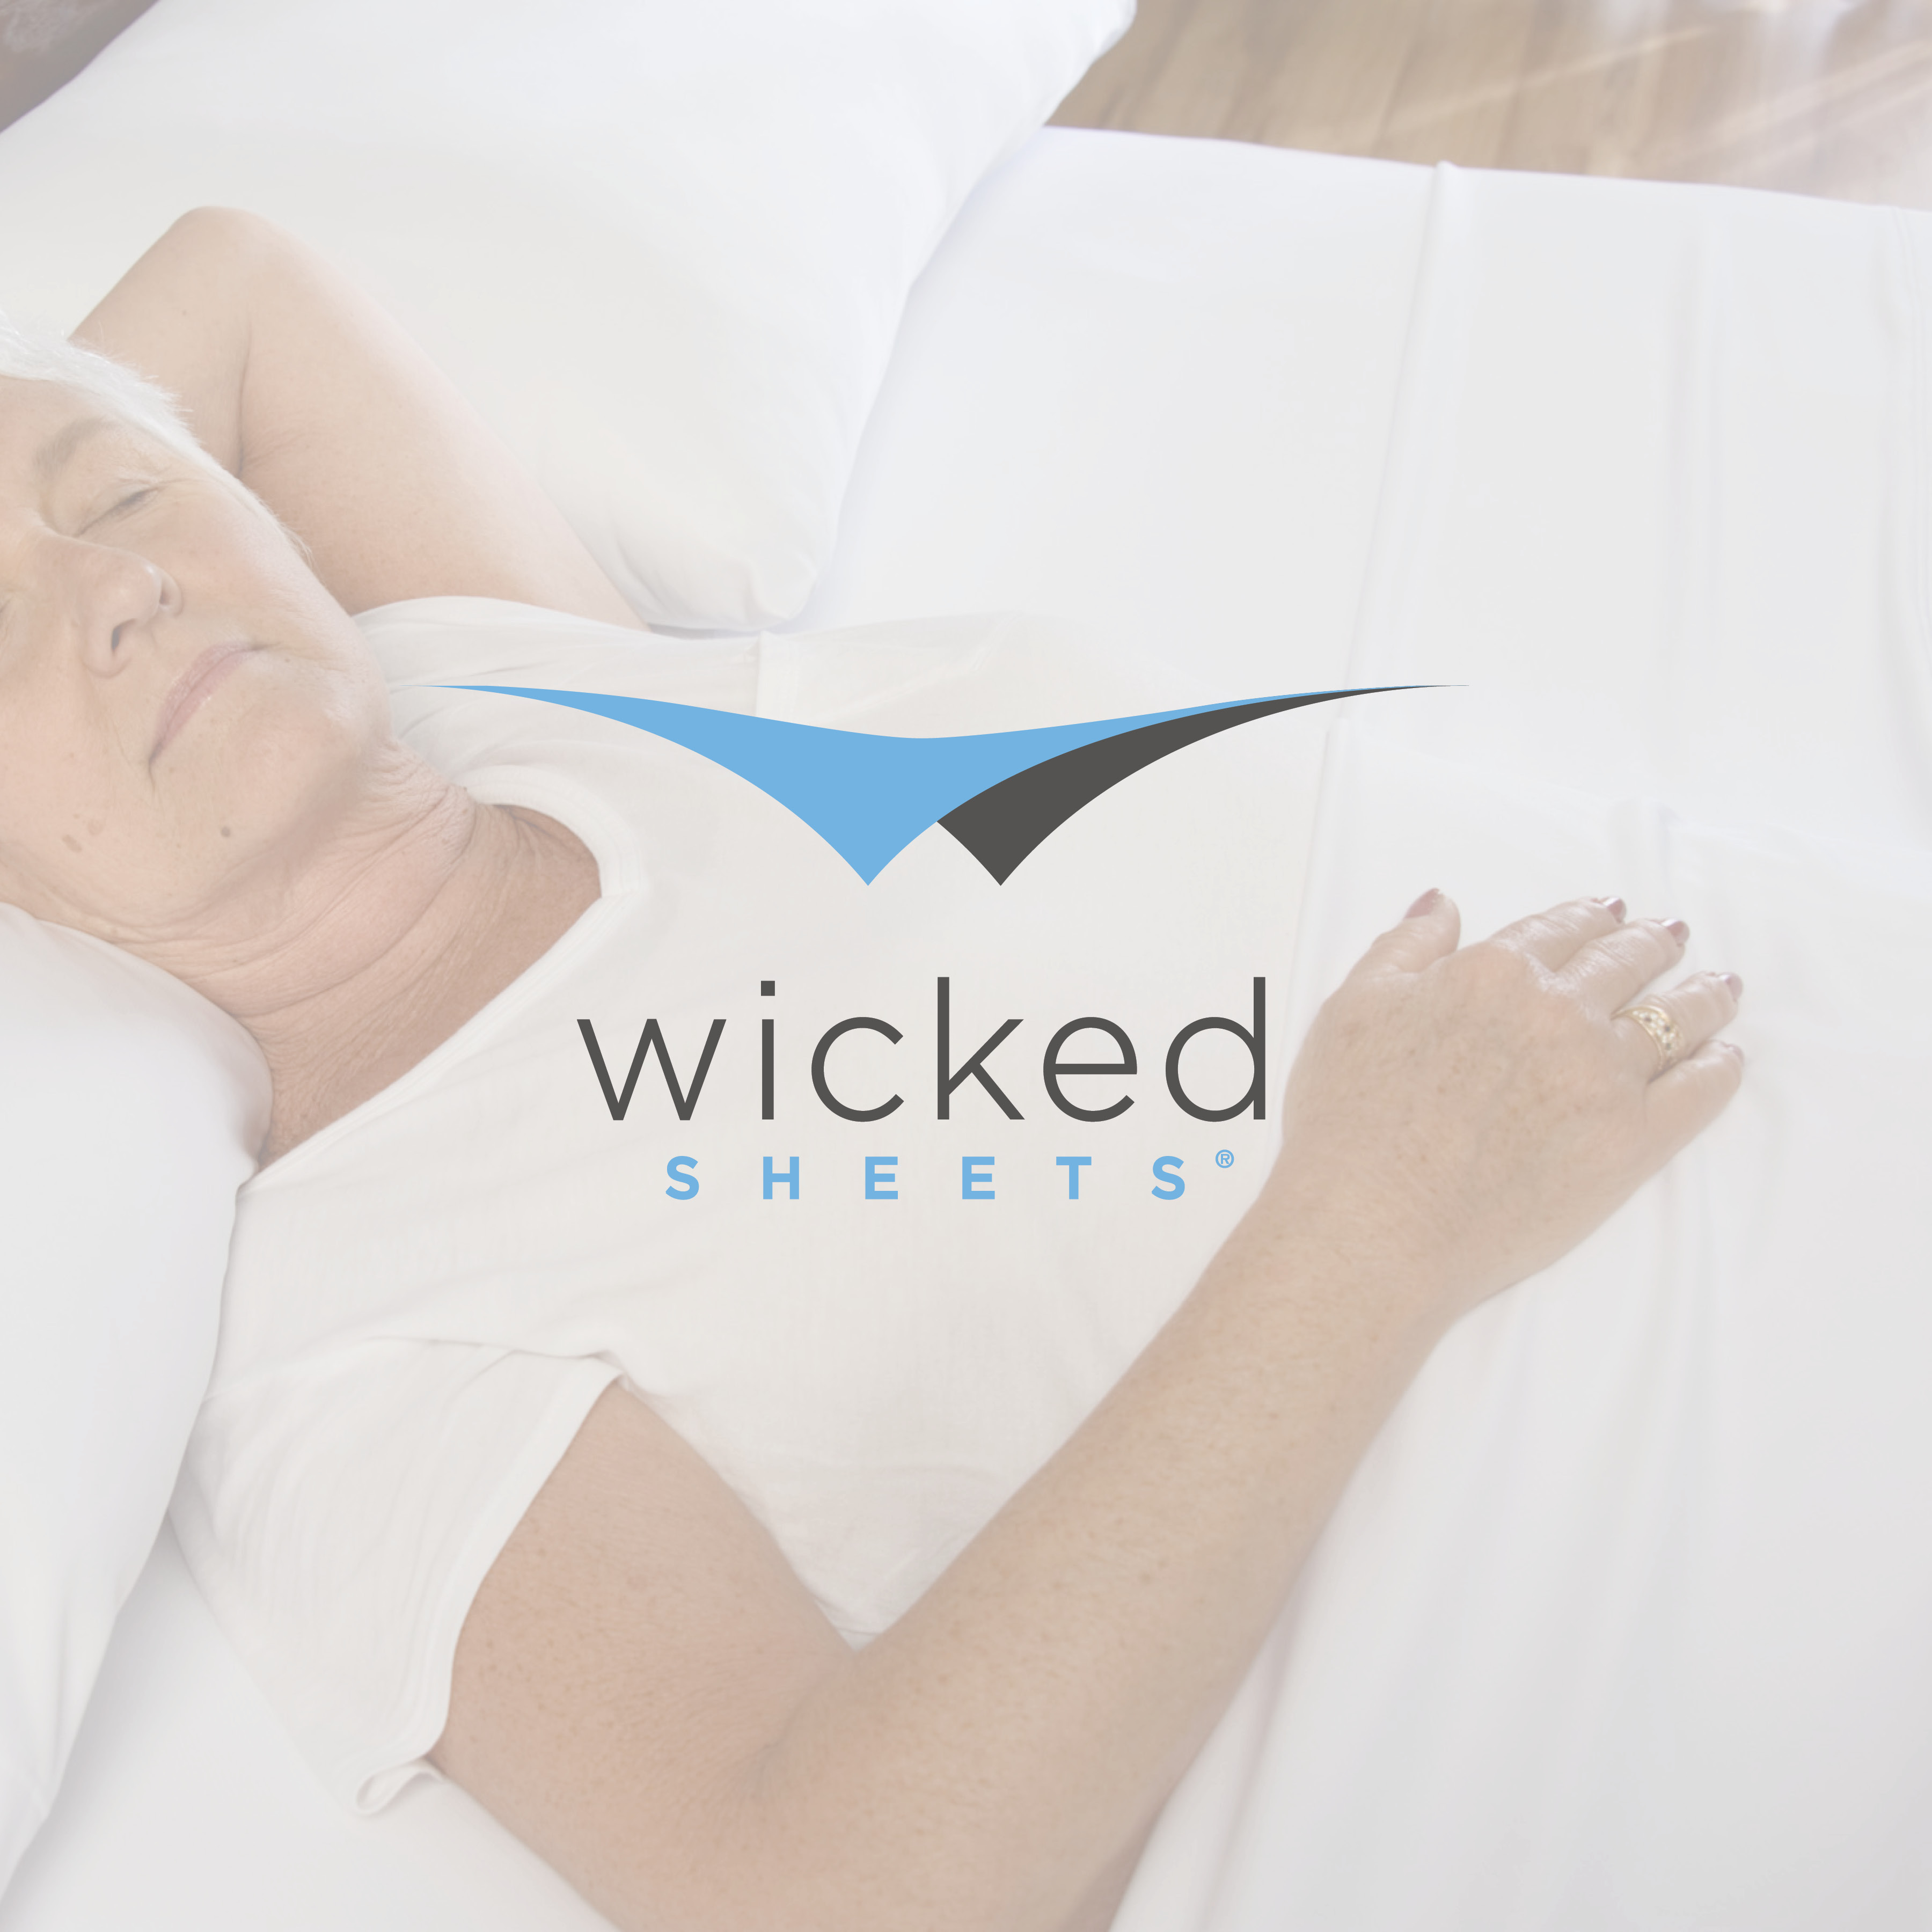 Wicked Sheets logo